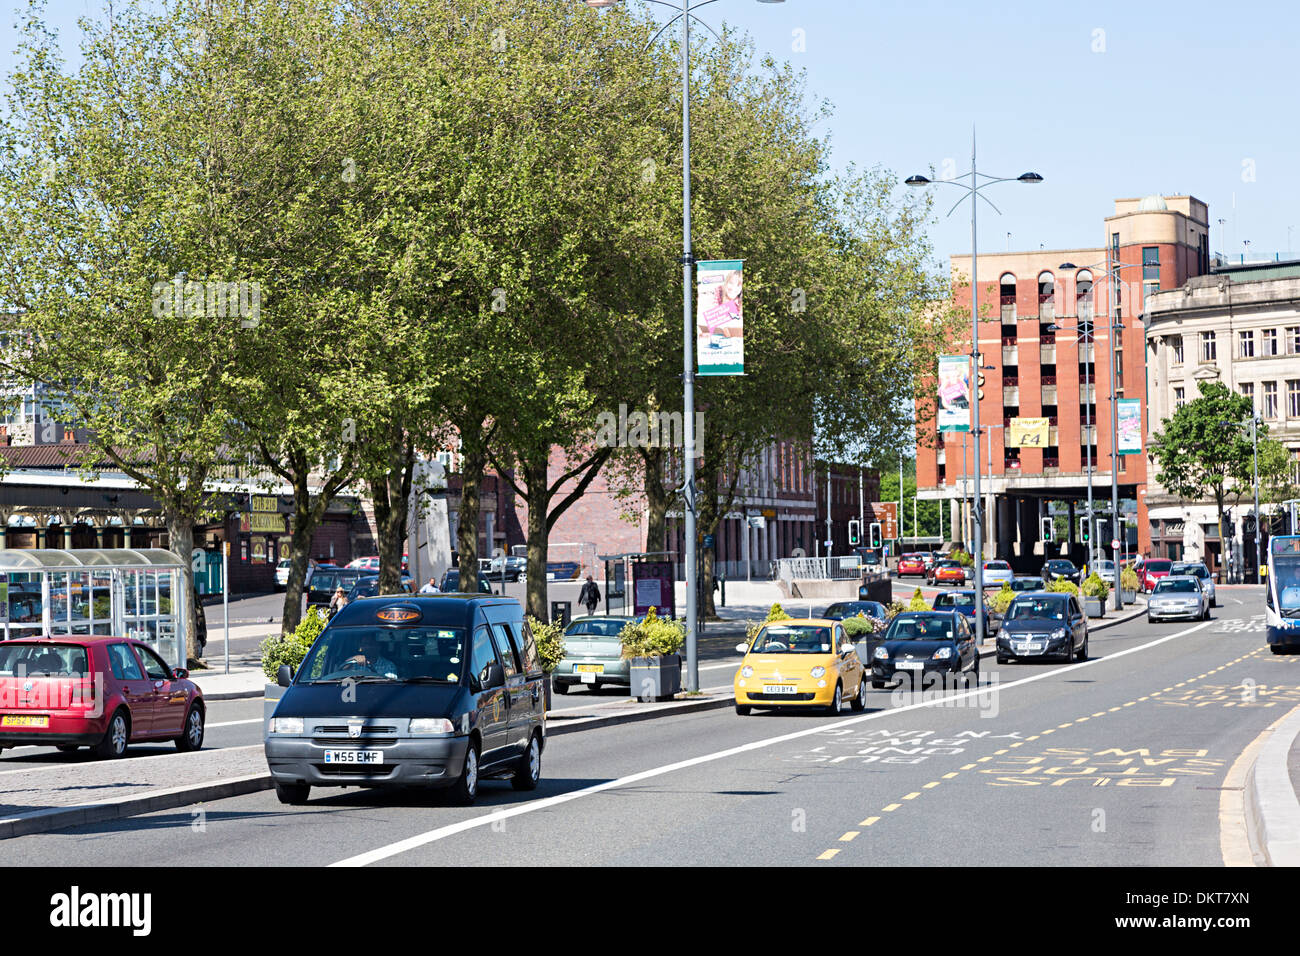 Taxi and cars driving through city centre, Newport, Gwent, Wales, UK - Stock Image